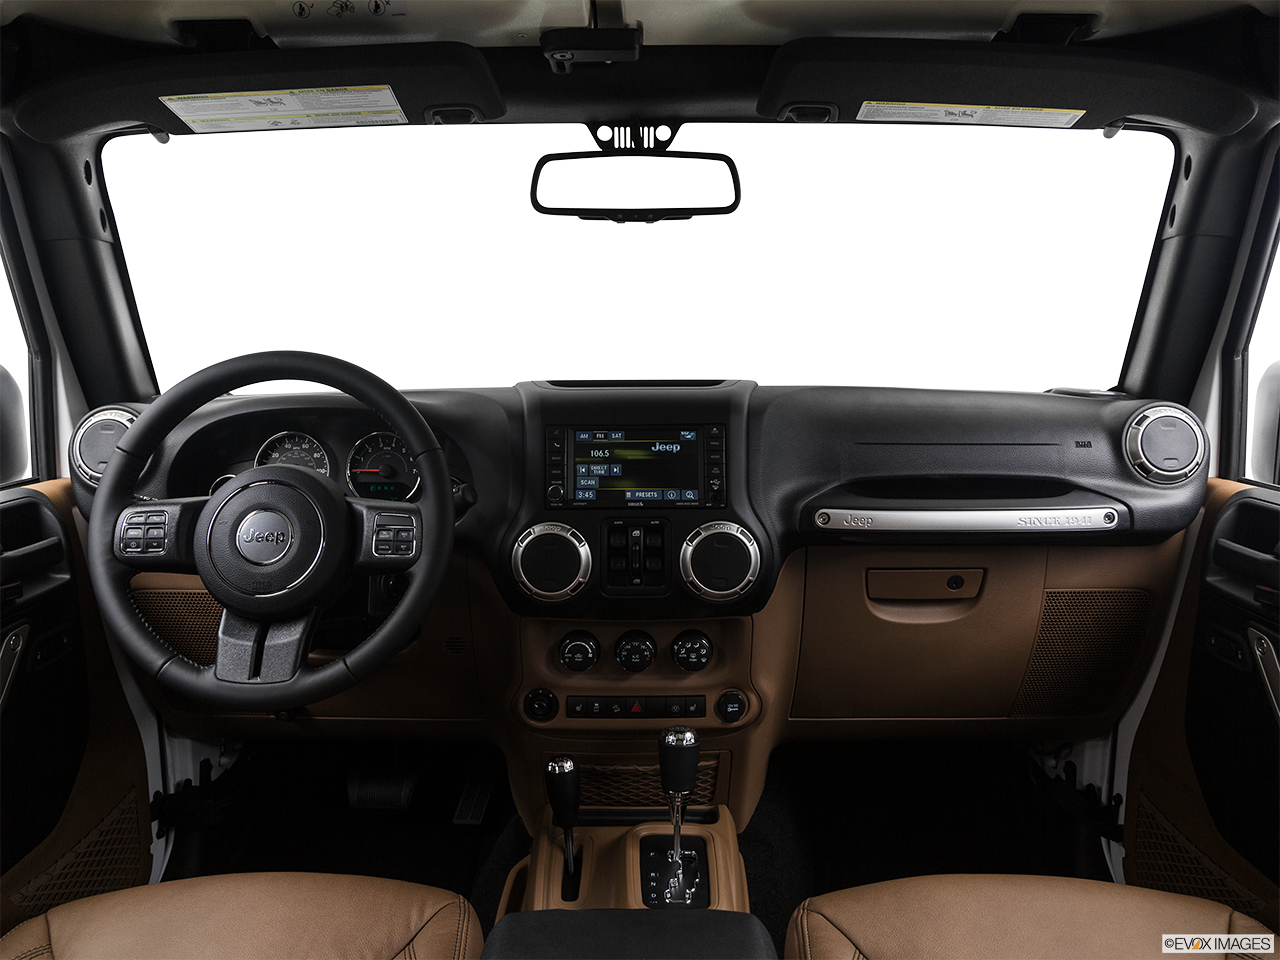 Interior View Of 2017 Jeep Wrangler Unlimited in West Palm Beach